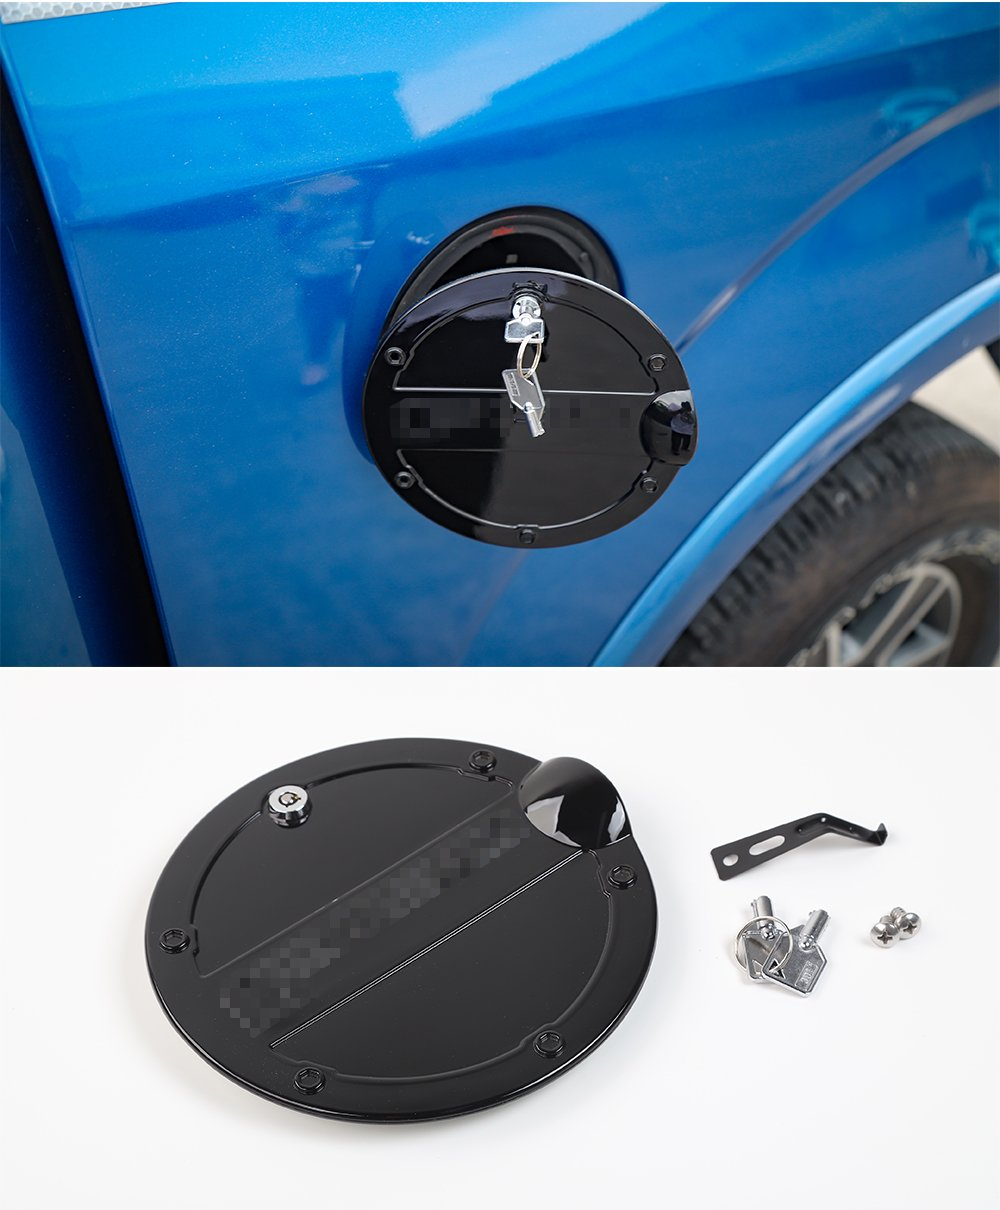 Iron Safety Locking Fuel Tank Cover Oil Lip Sticker Gas Tank Cap with Key fit for Ford F150 2015 2016 2017 Black Nicebee ABS